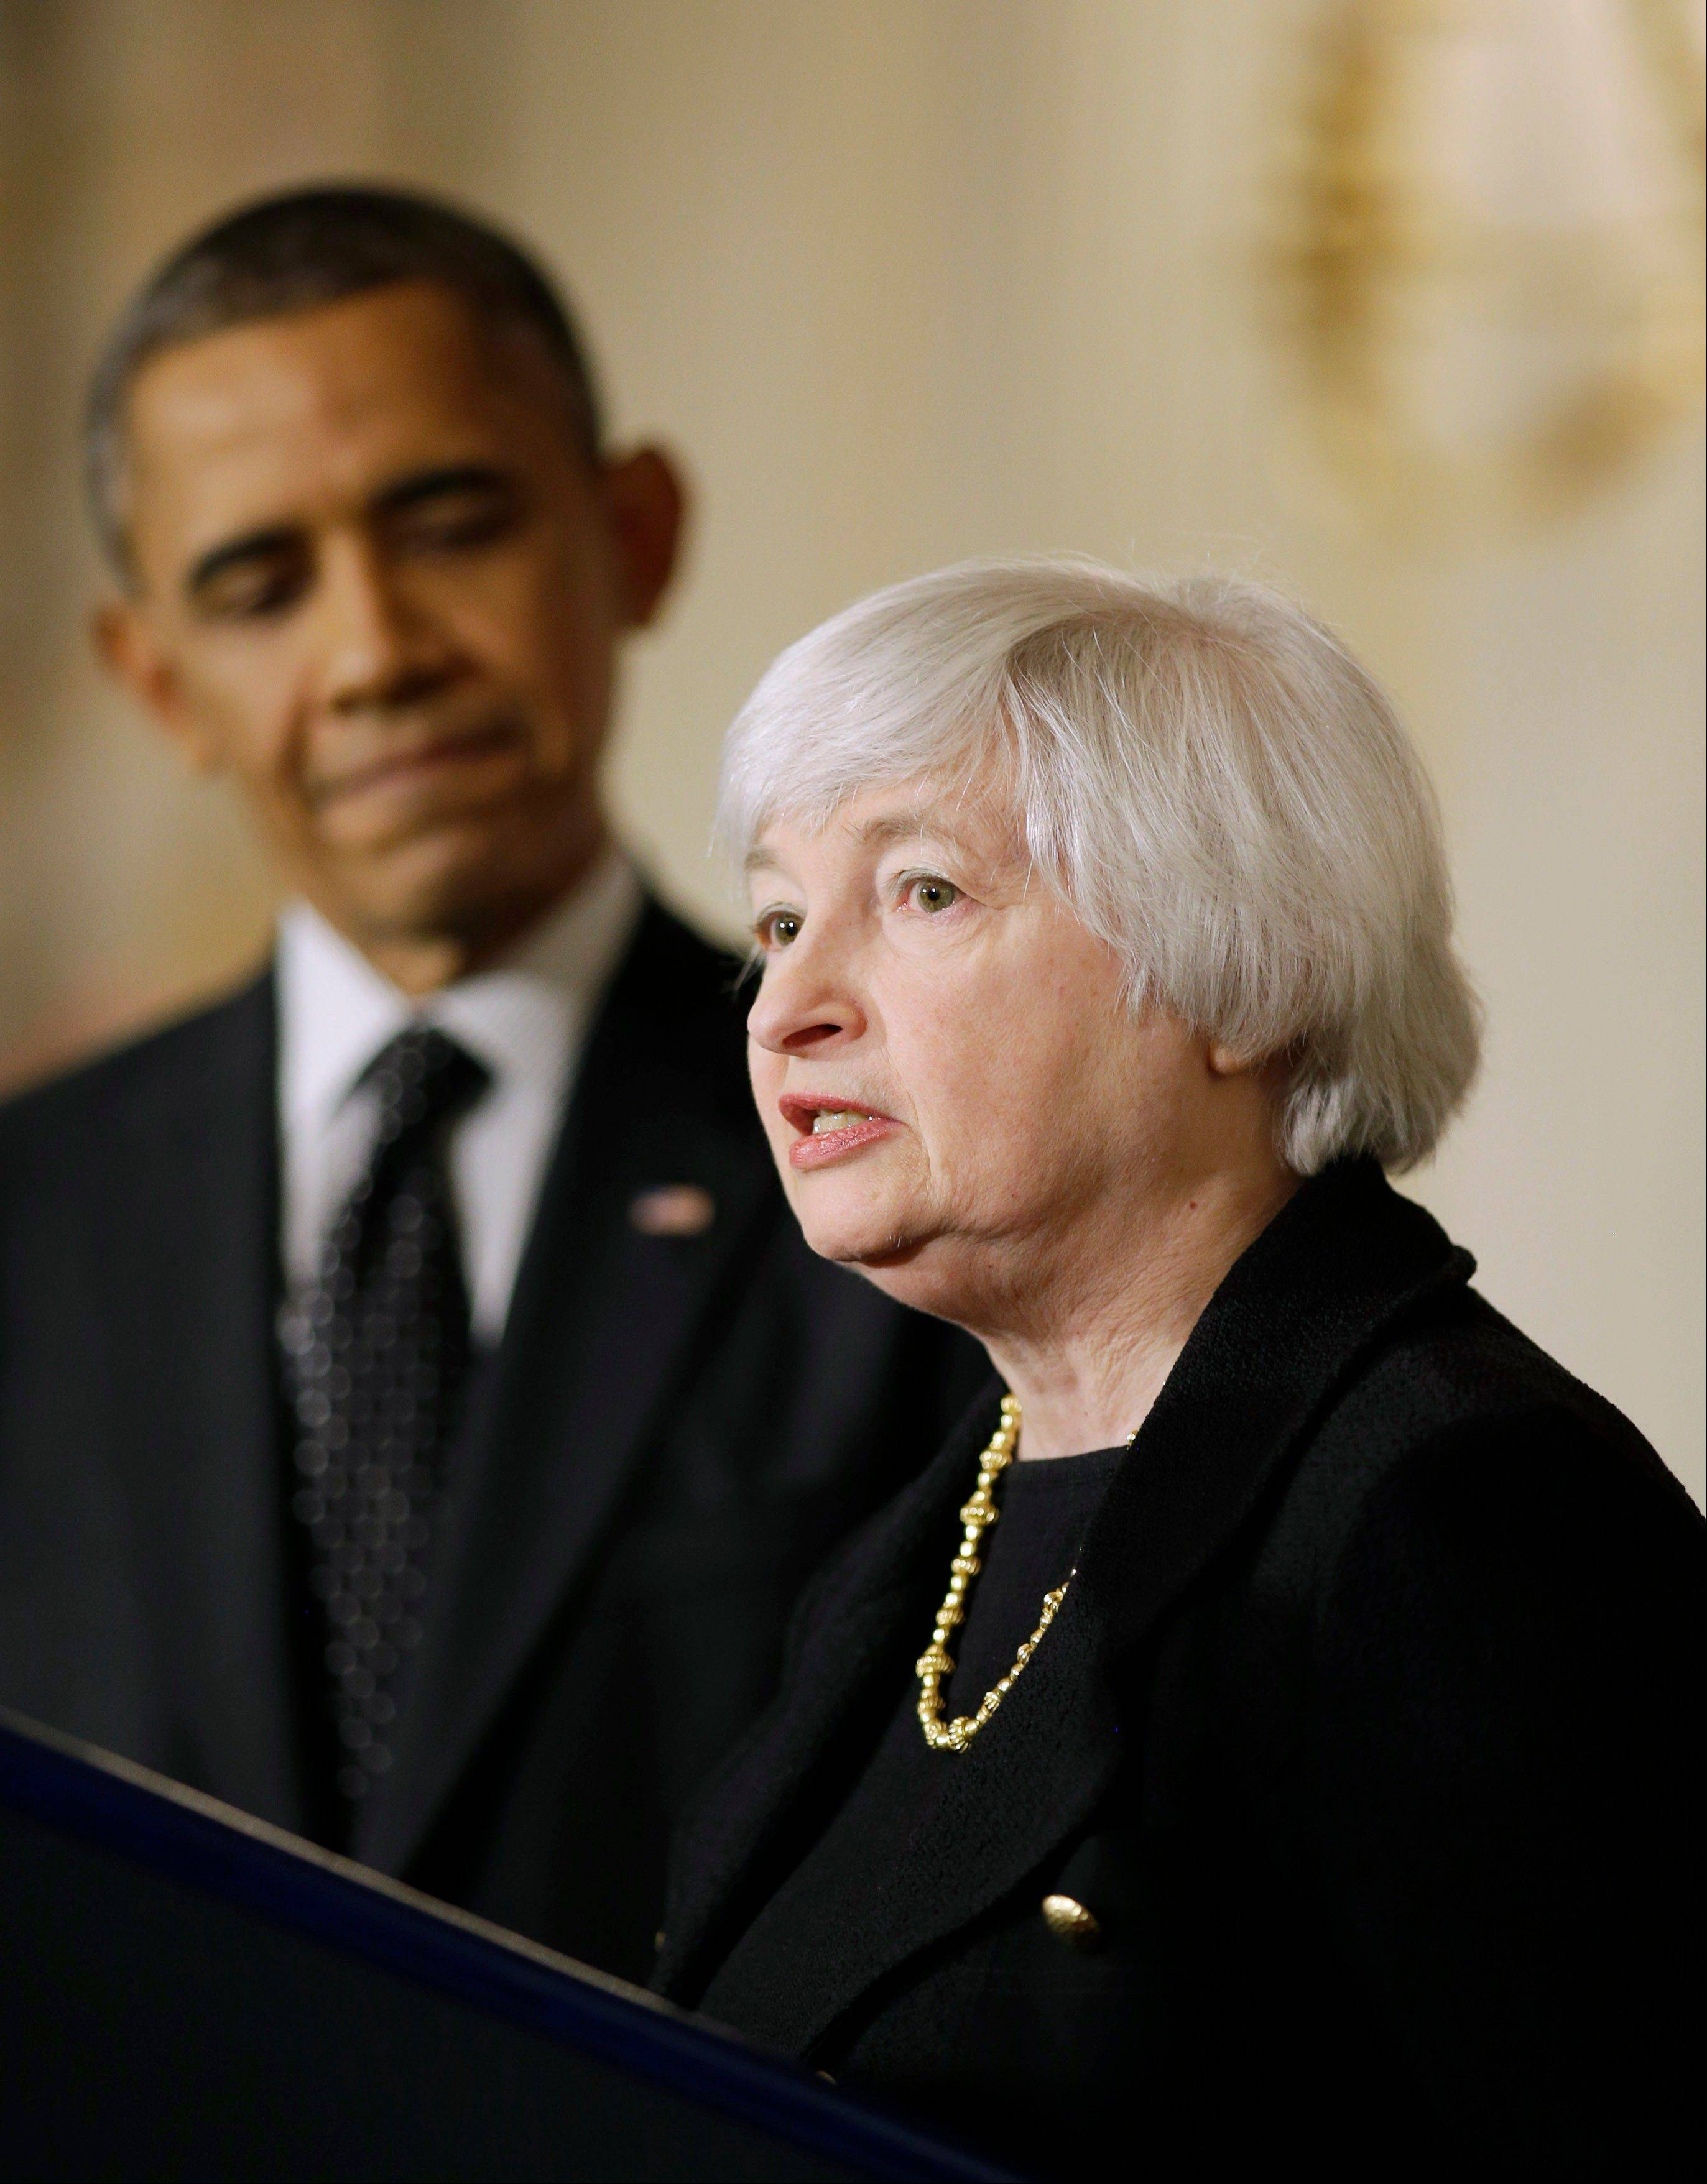 President Barack Obama listens as Janet Yellen, vice chair of the Board of Governors of the Federal Reserve System, speaks at the White House Wednesday after the president announced he is nominating Yellen to be chair of the Federal Reserve, succeeding Ben Bernanke.